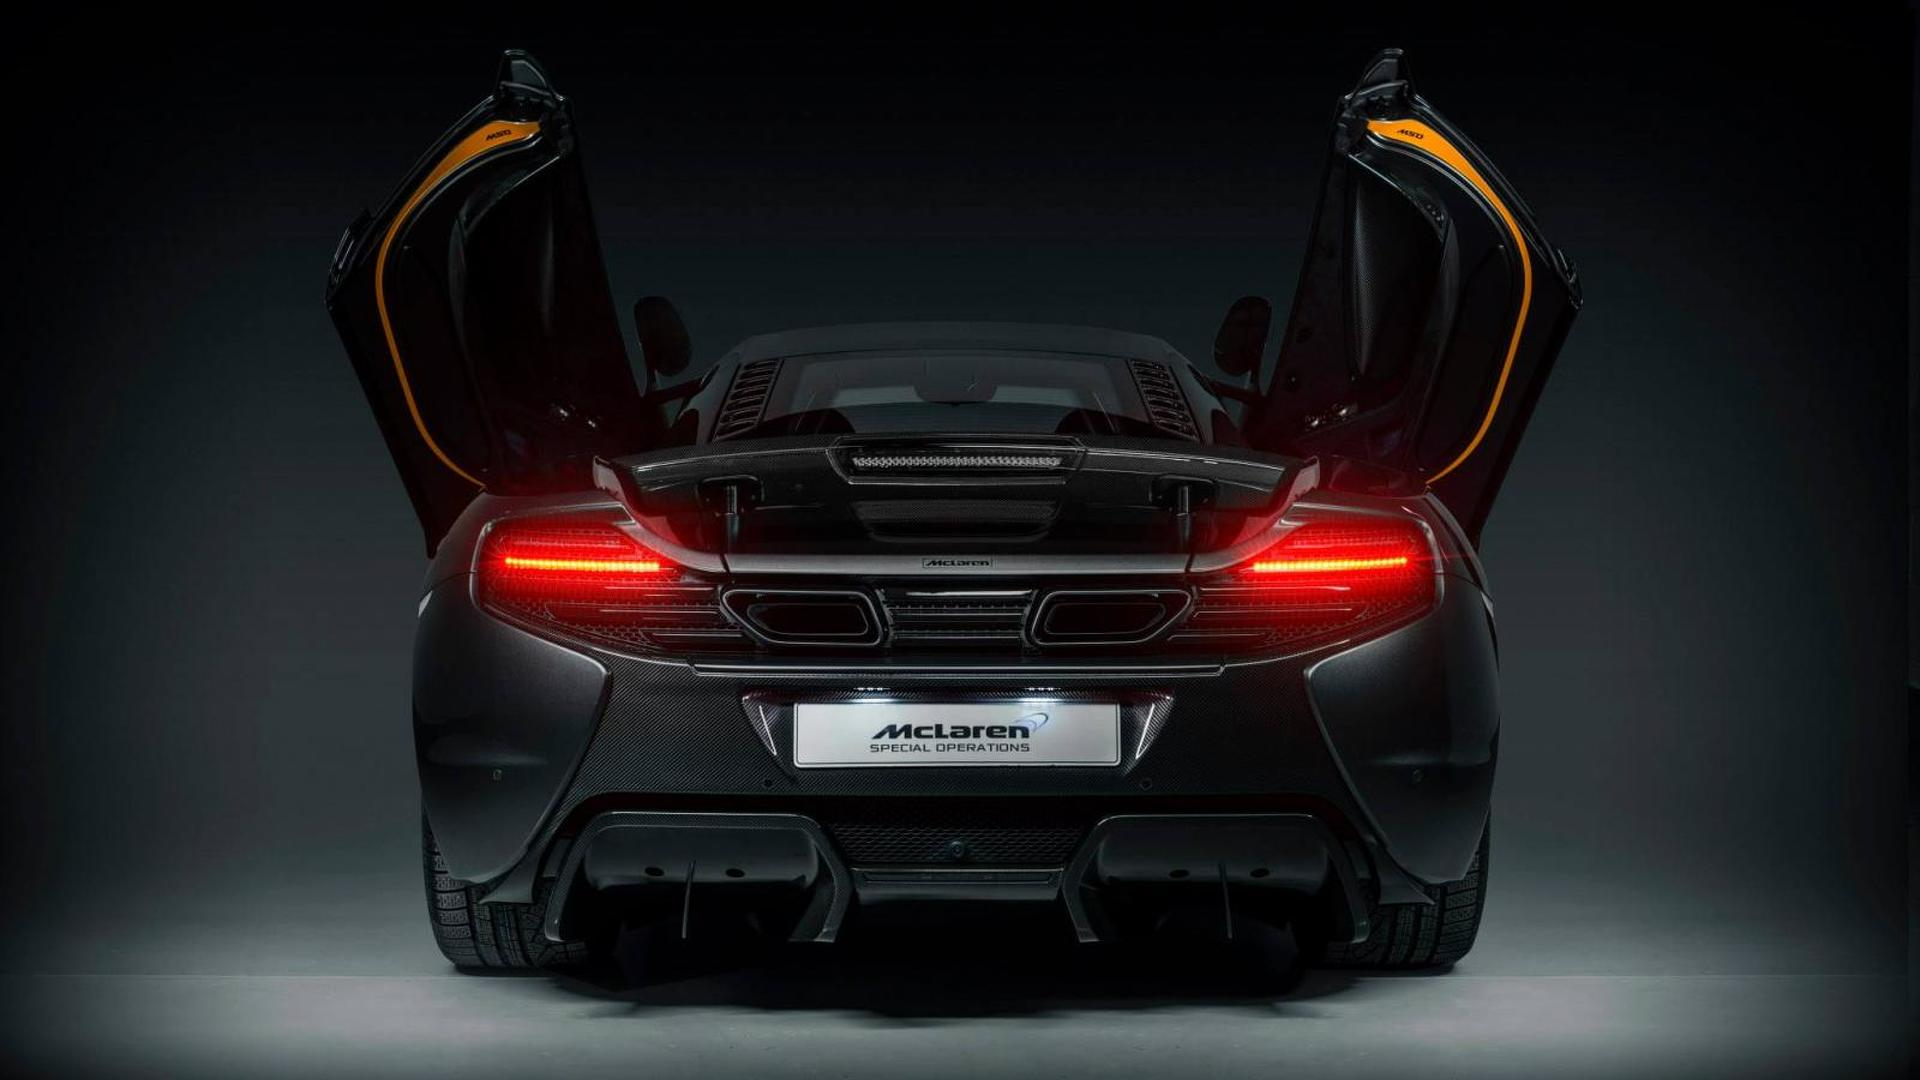 McLaren MSO reveals the one-off 650S Project Kilo